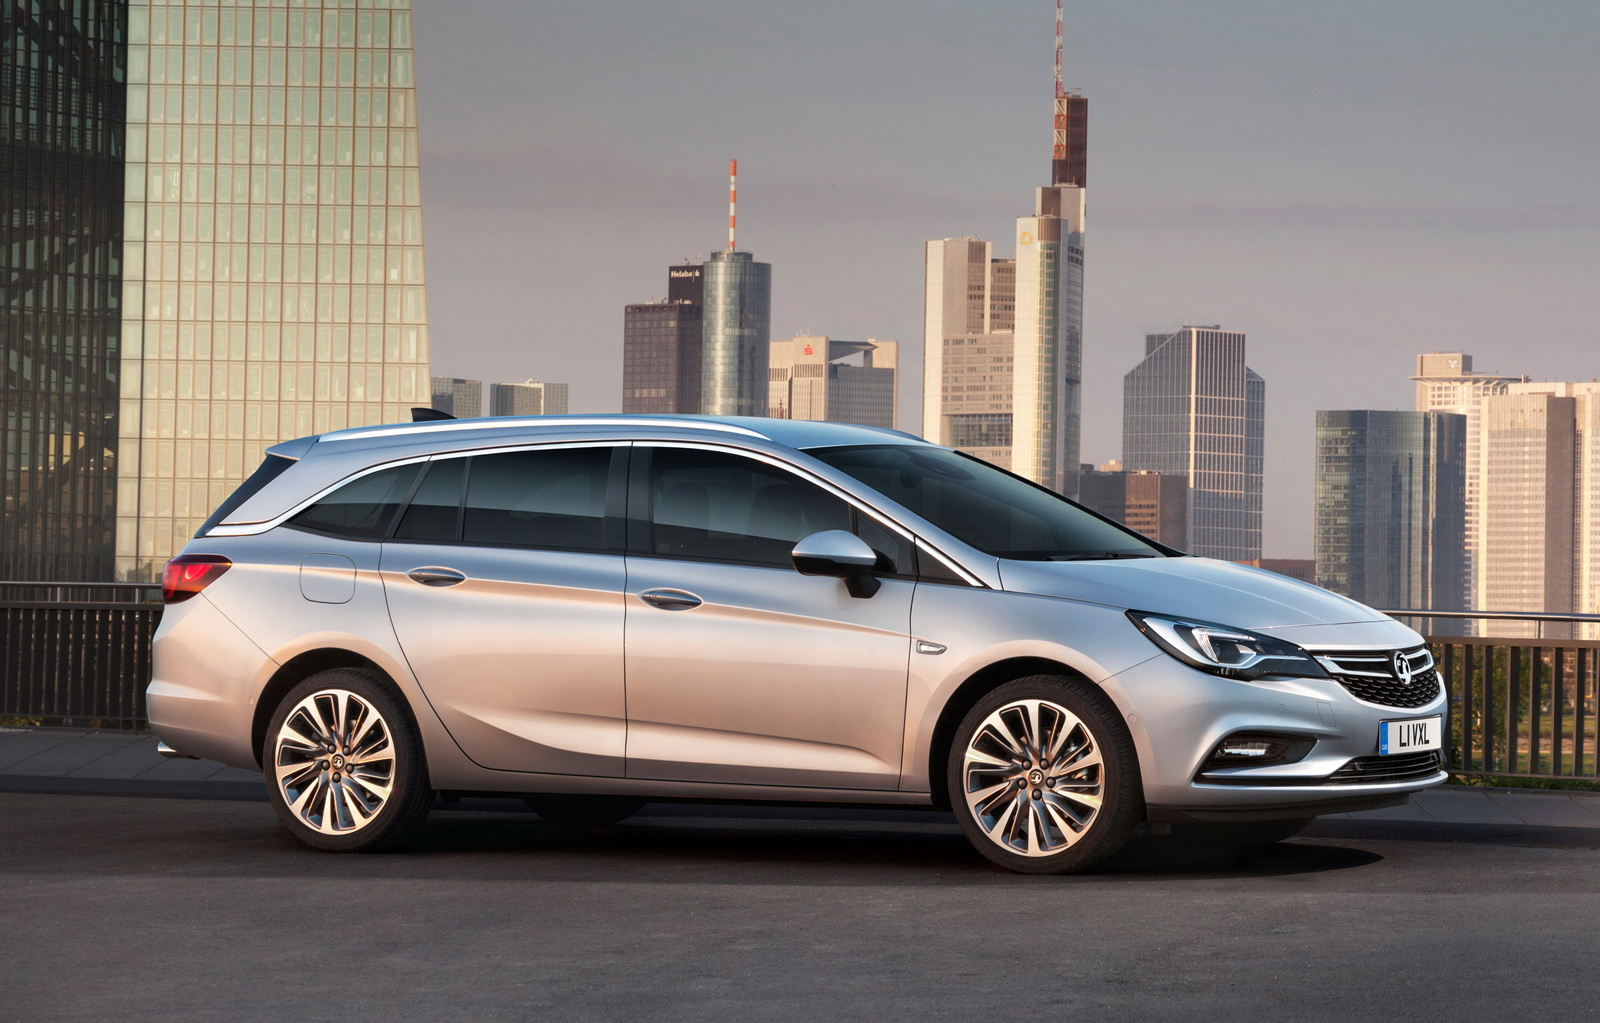 New Vauxhall Astra Sports Tourer Priced From 16585 In The UK